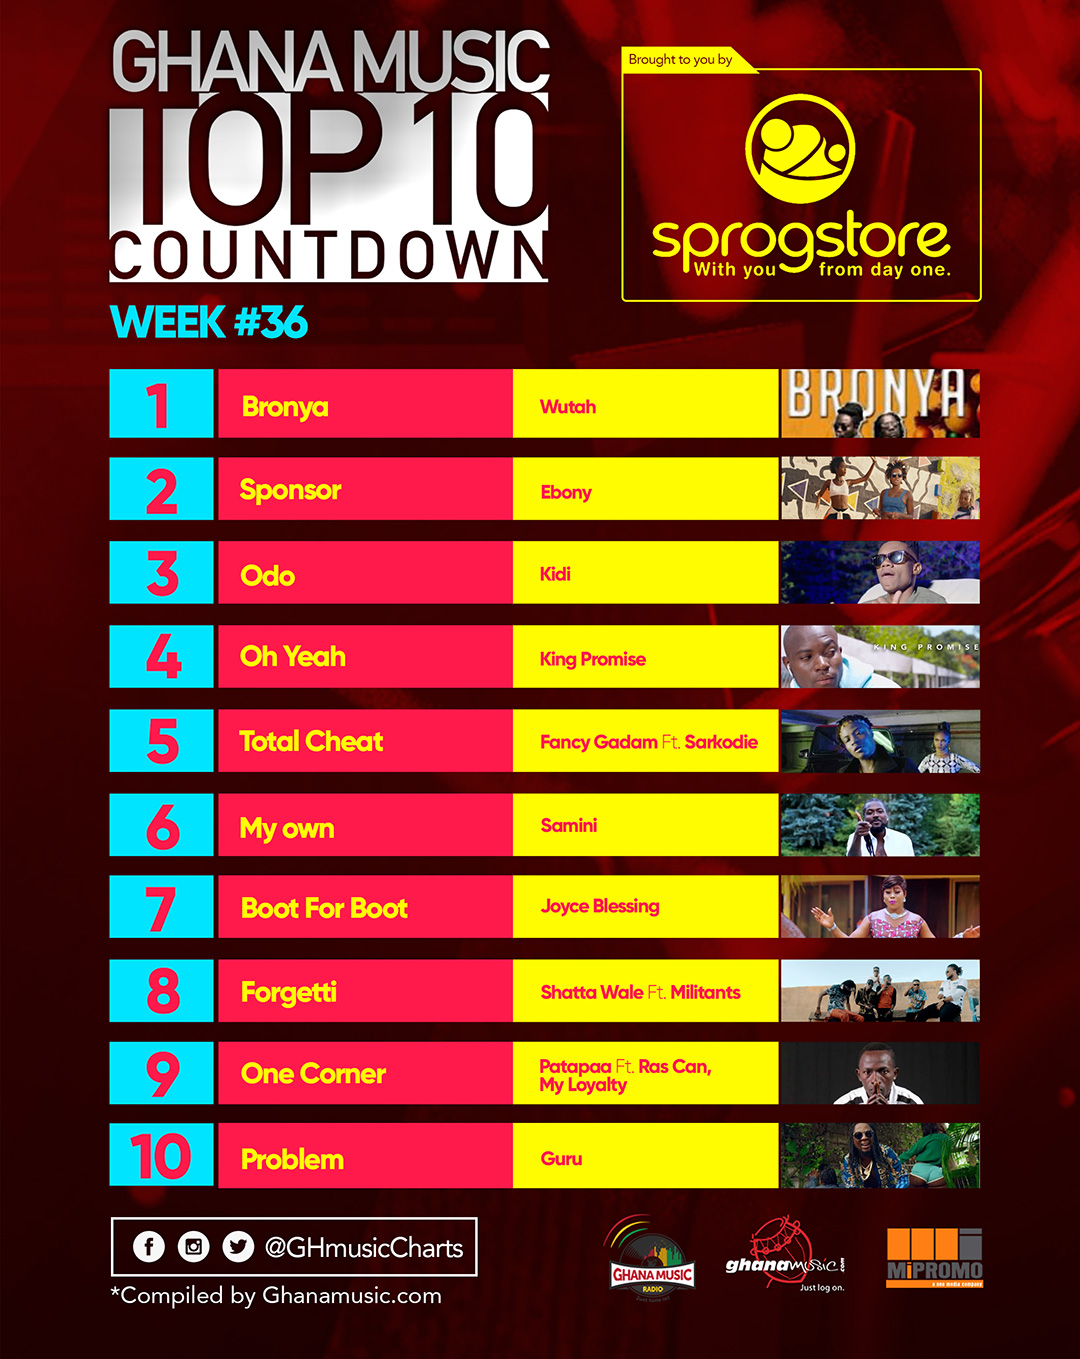 Week #36: Week ending Saturday, September 10th, 2017. Ghana Music Top 10 Countdown.